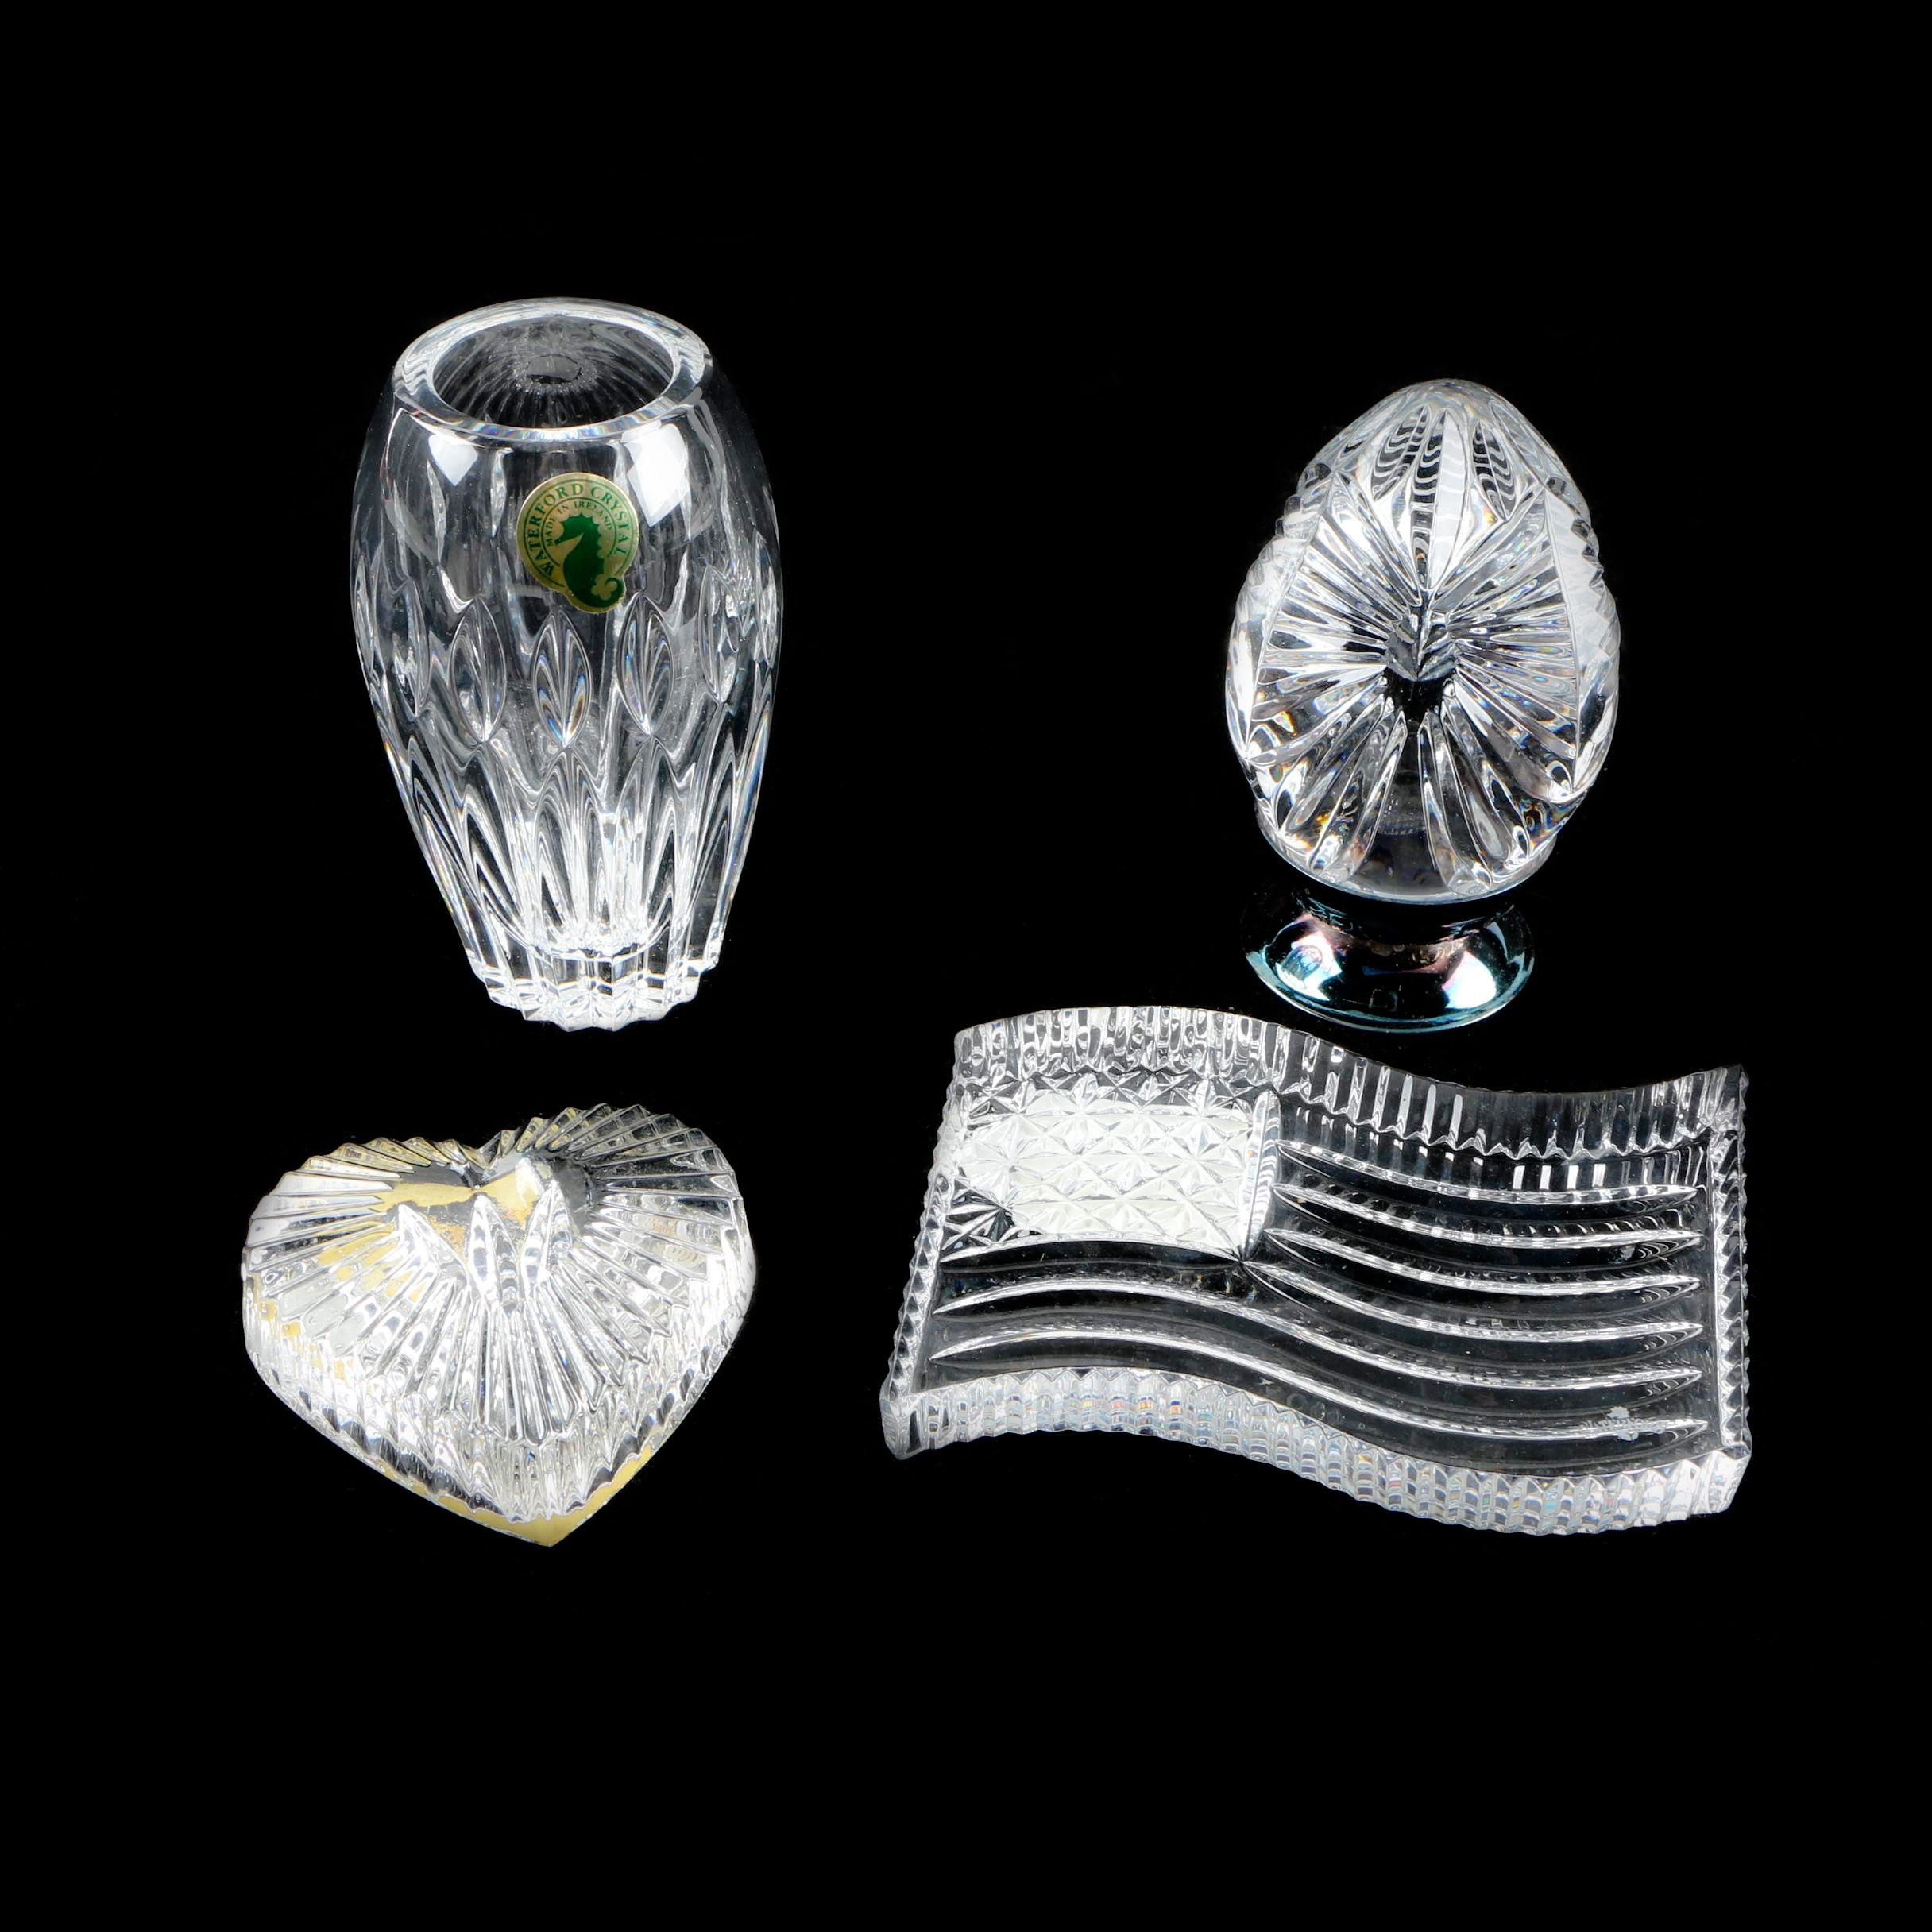 Waterford Crystal Bud Vase and Decor